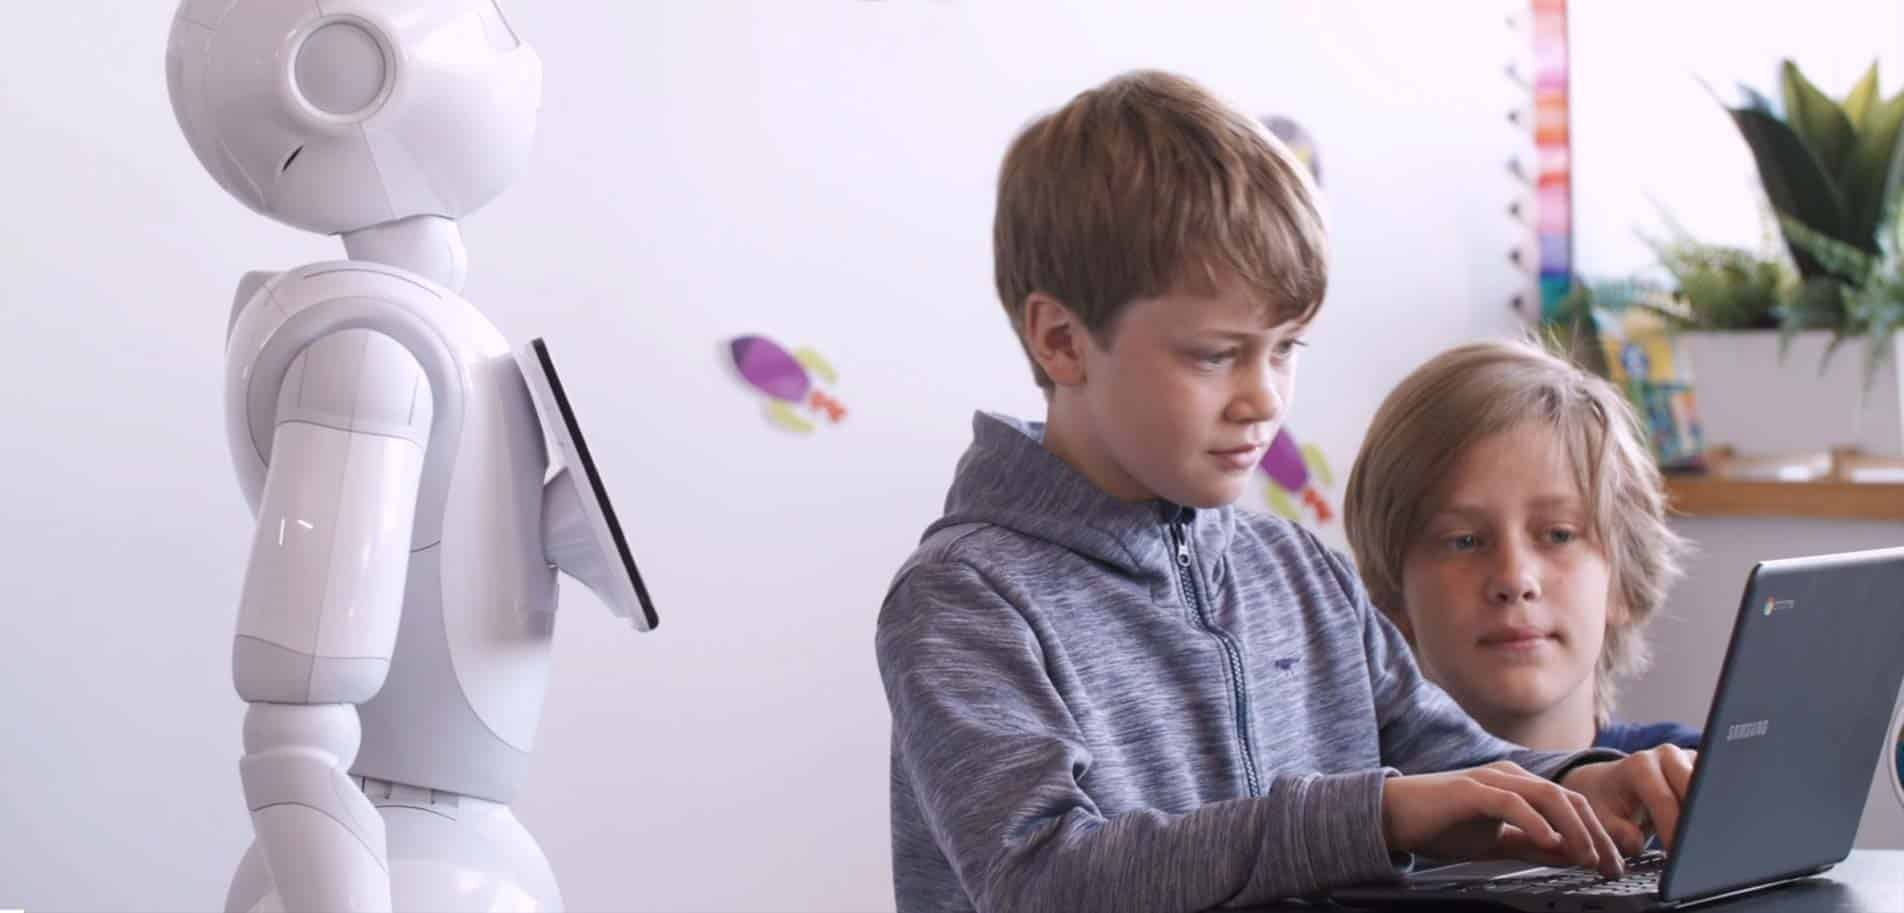 SoftBank Robotics Tethys – The Future of Education